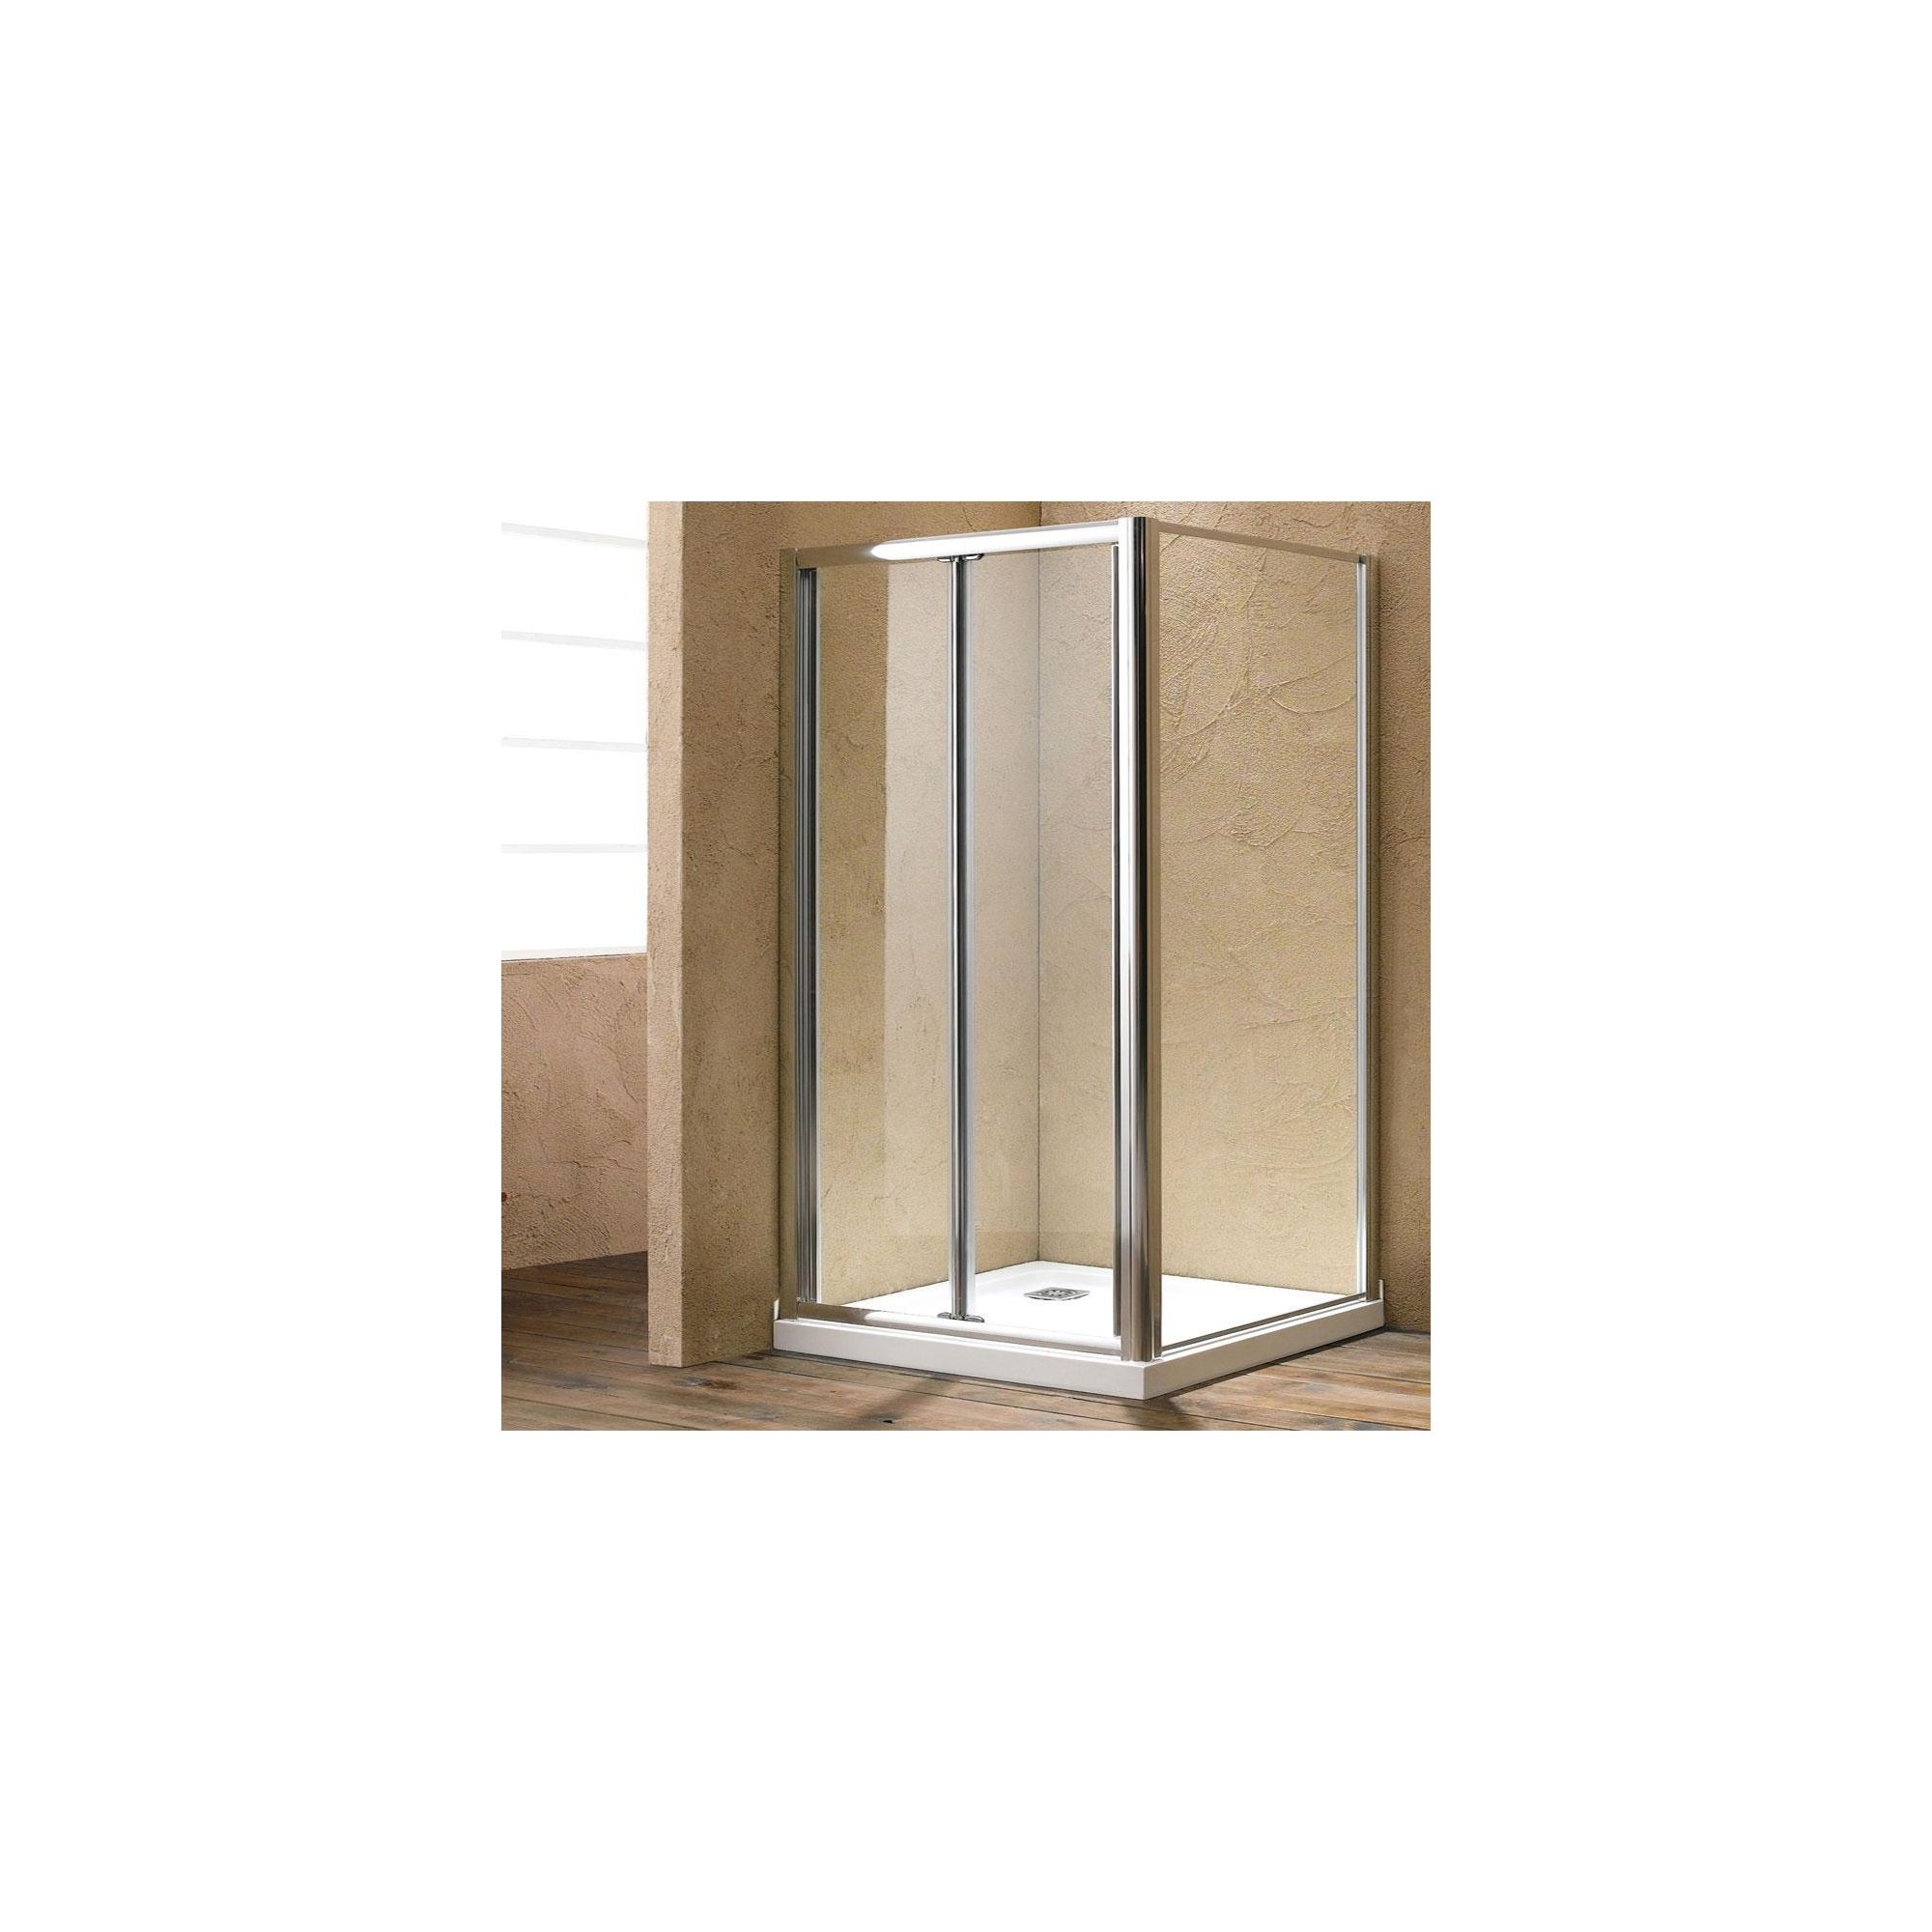 Duchy Style Single Bi-Fold Door Shower Enclosure, 800mm x 760mm, 6mm Glass, Low Profile Tray at Tescos Direct